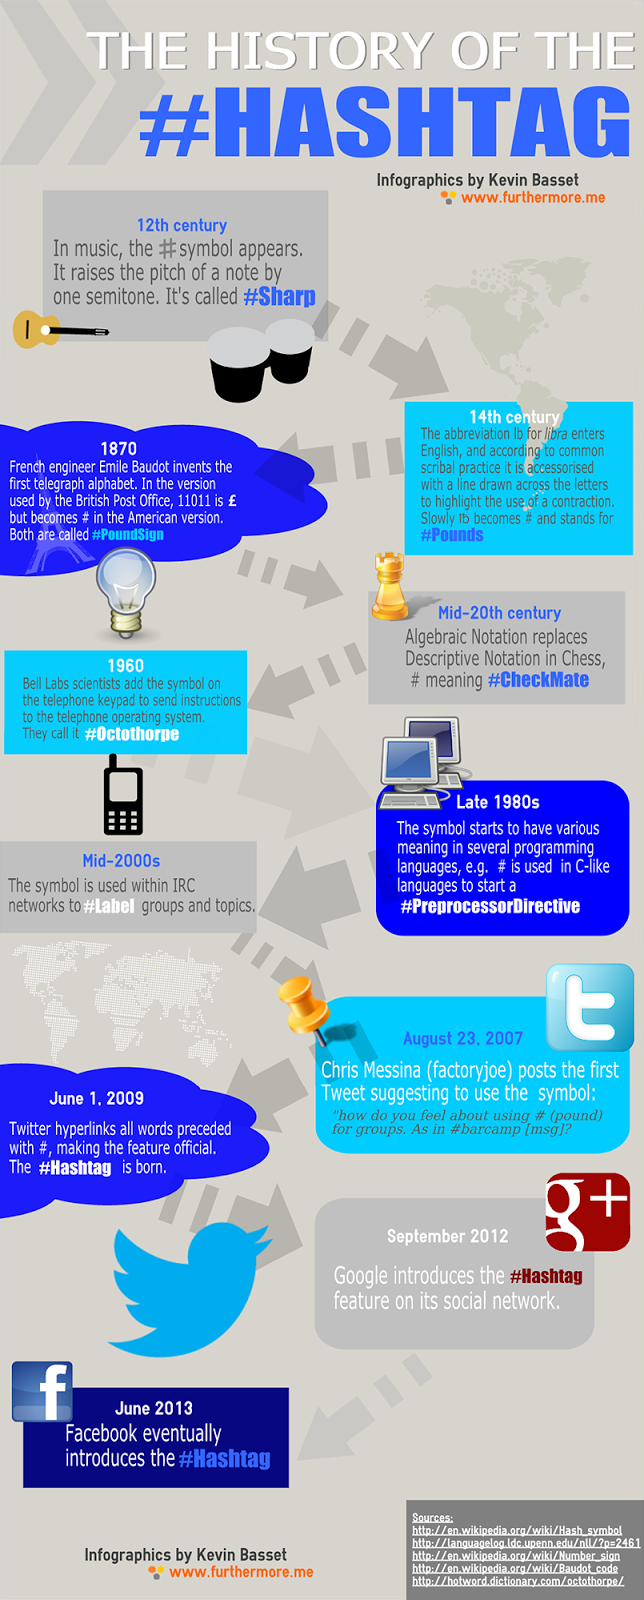 The History of the #Hashtag